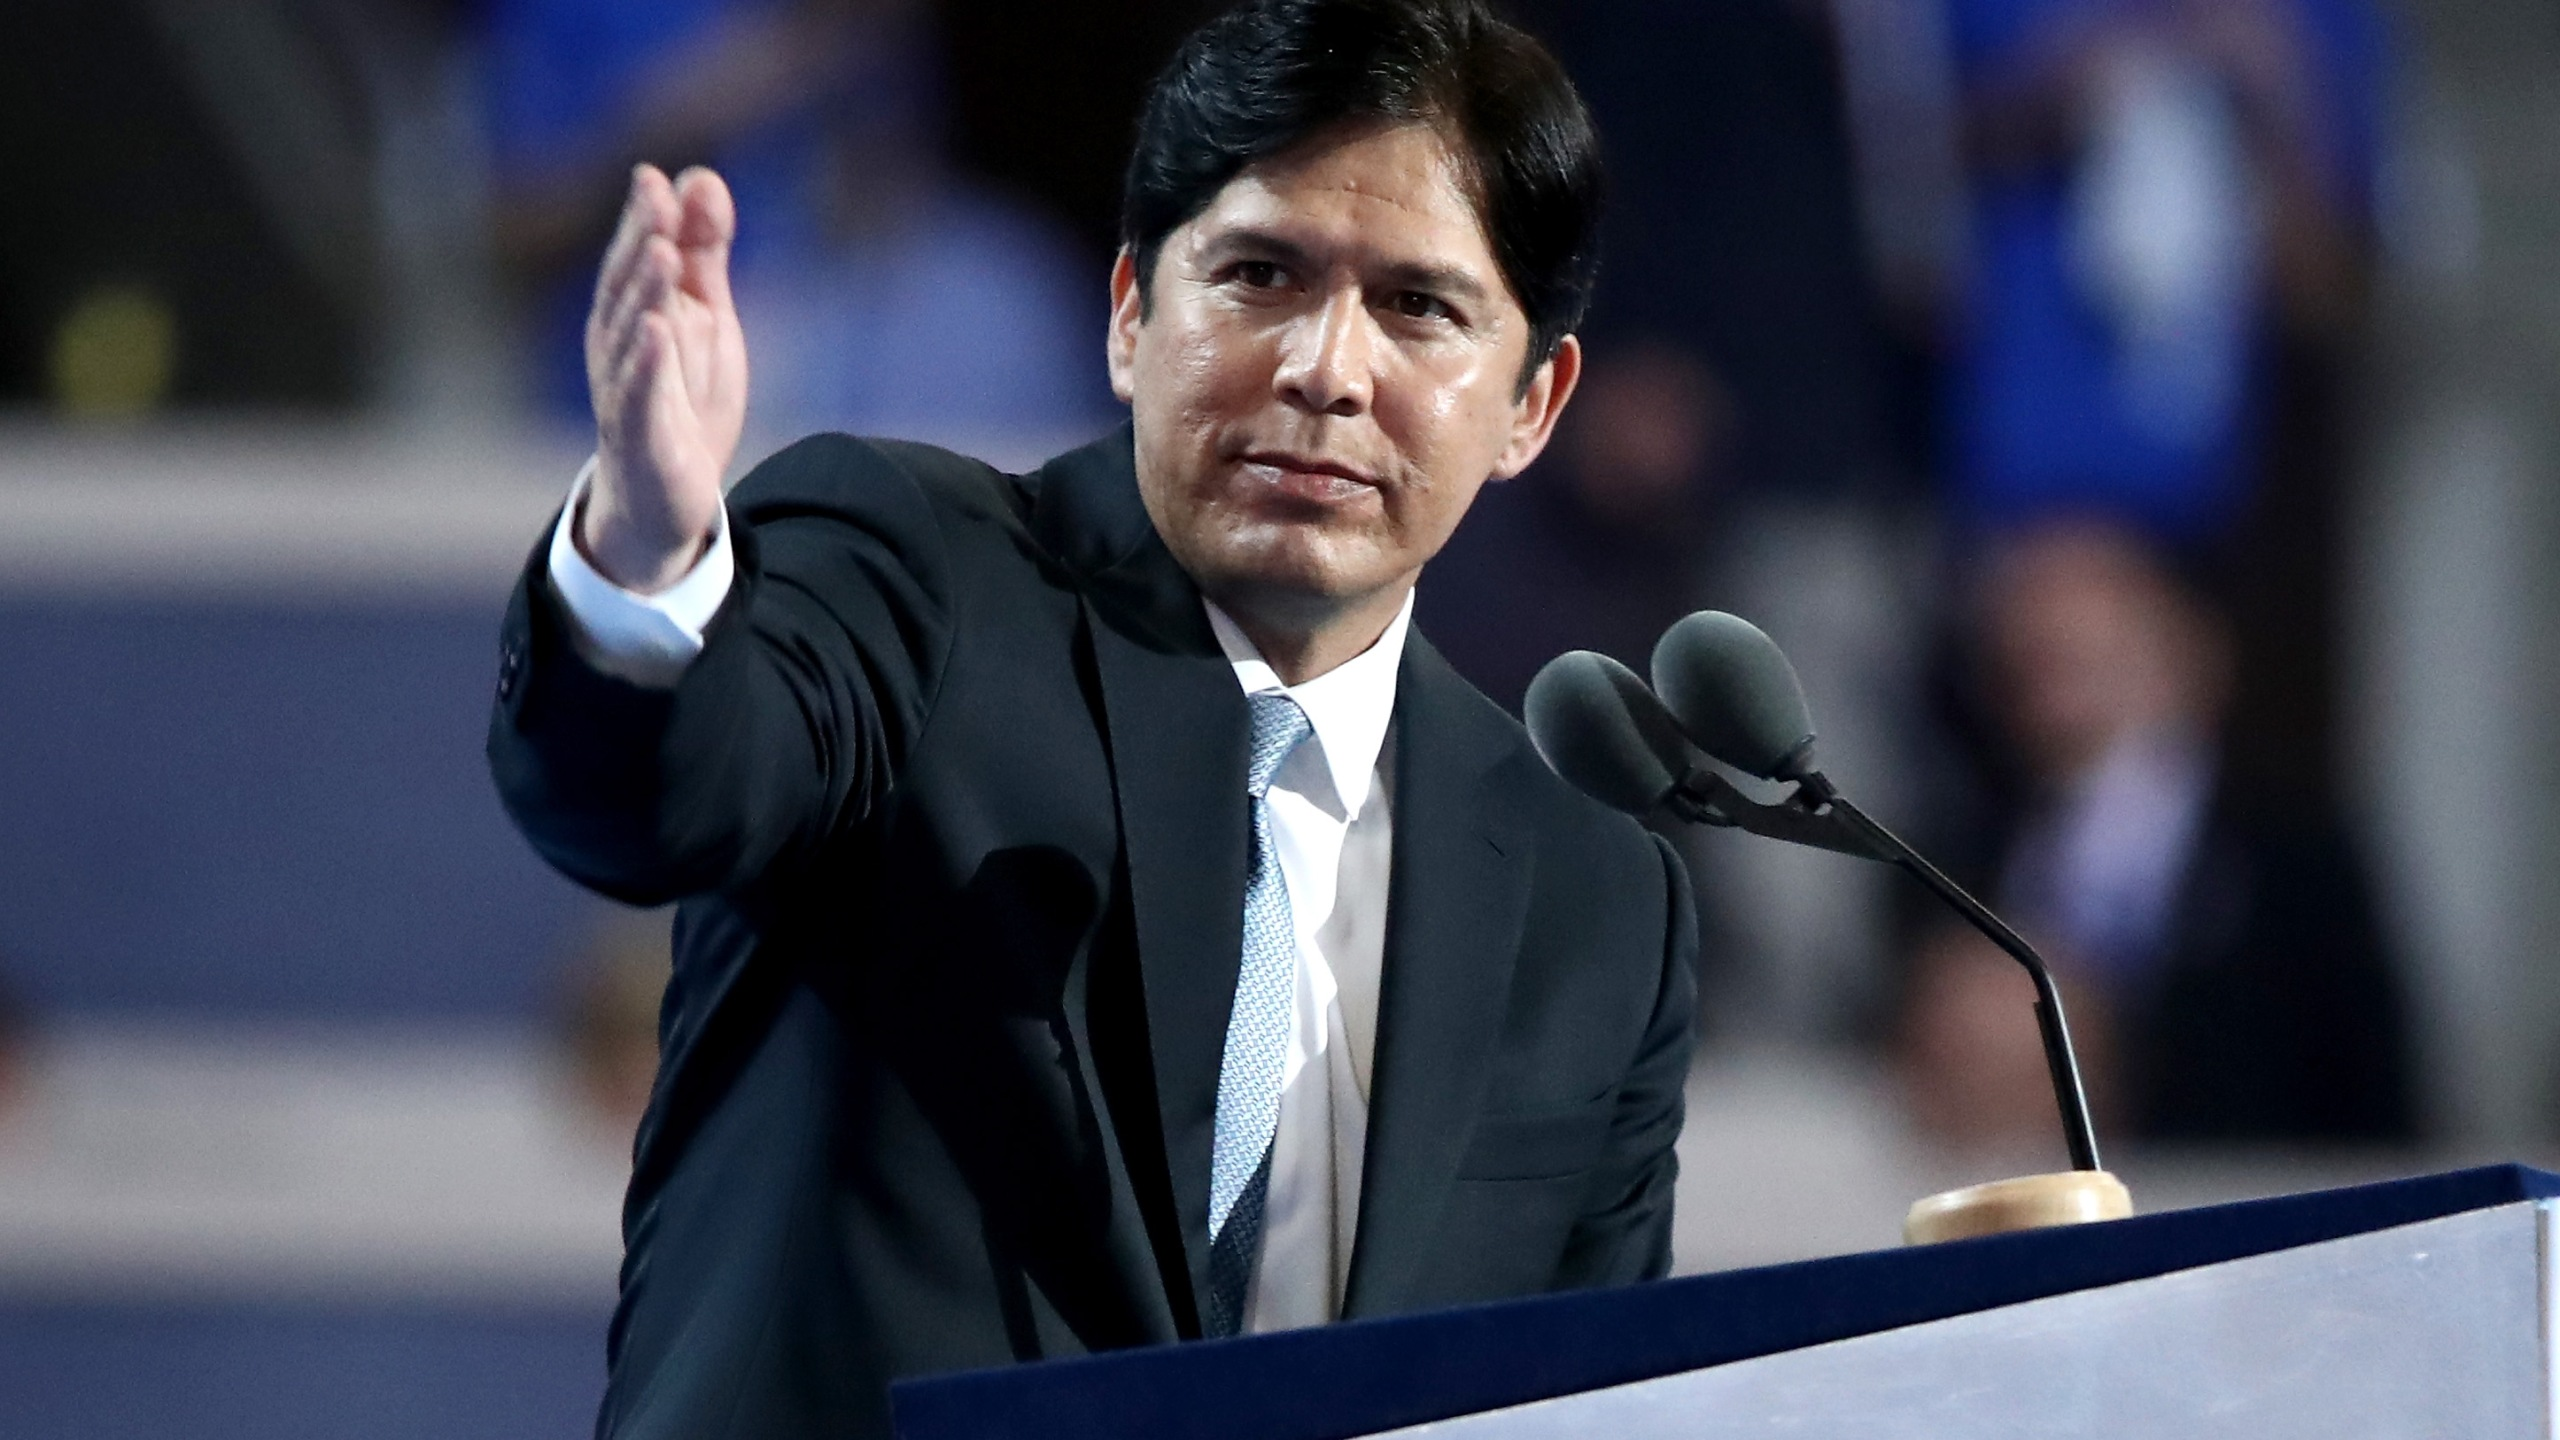 State Senator Kevin de León delivers a speech on the first day of the Democratic National Convention at the Wells Fargo Center in Philadelphia on July 25, 2016. (Credit: Jessica Kourkounis / Getty Images)